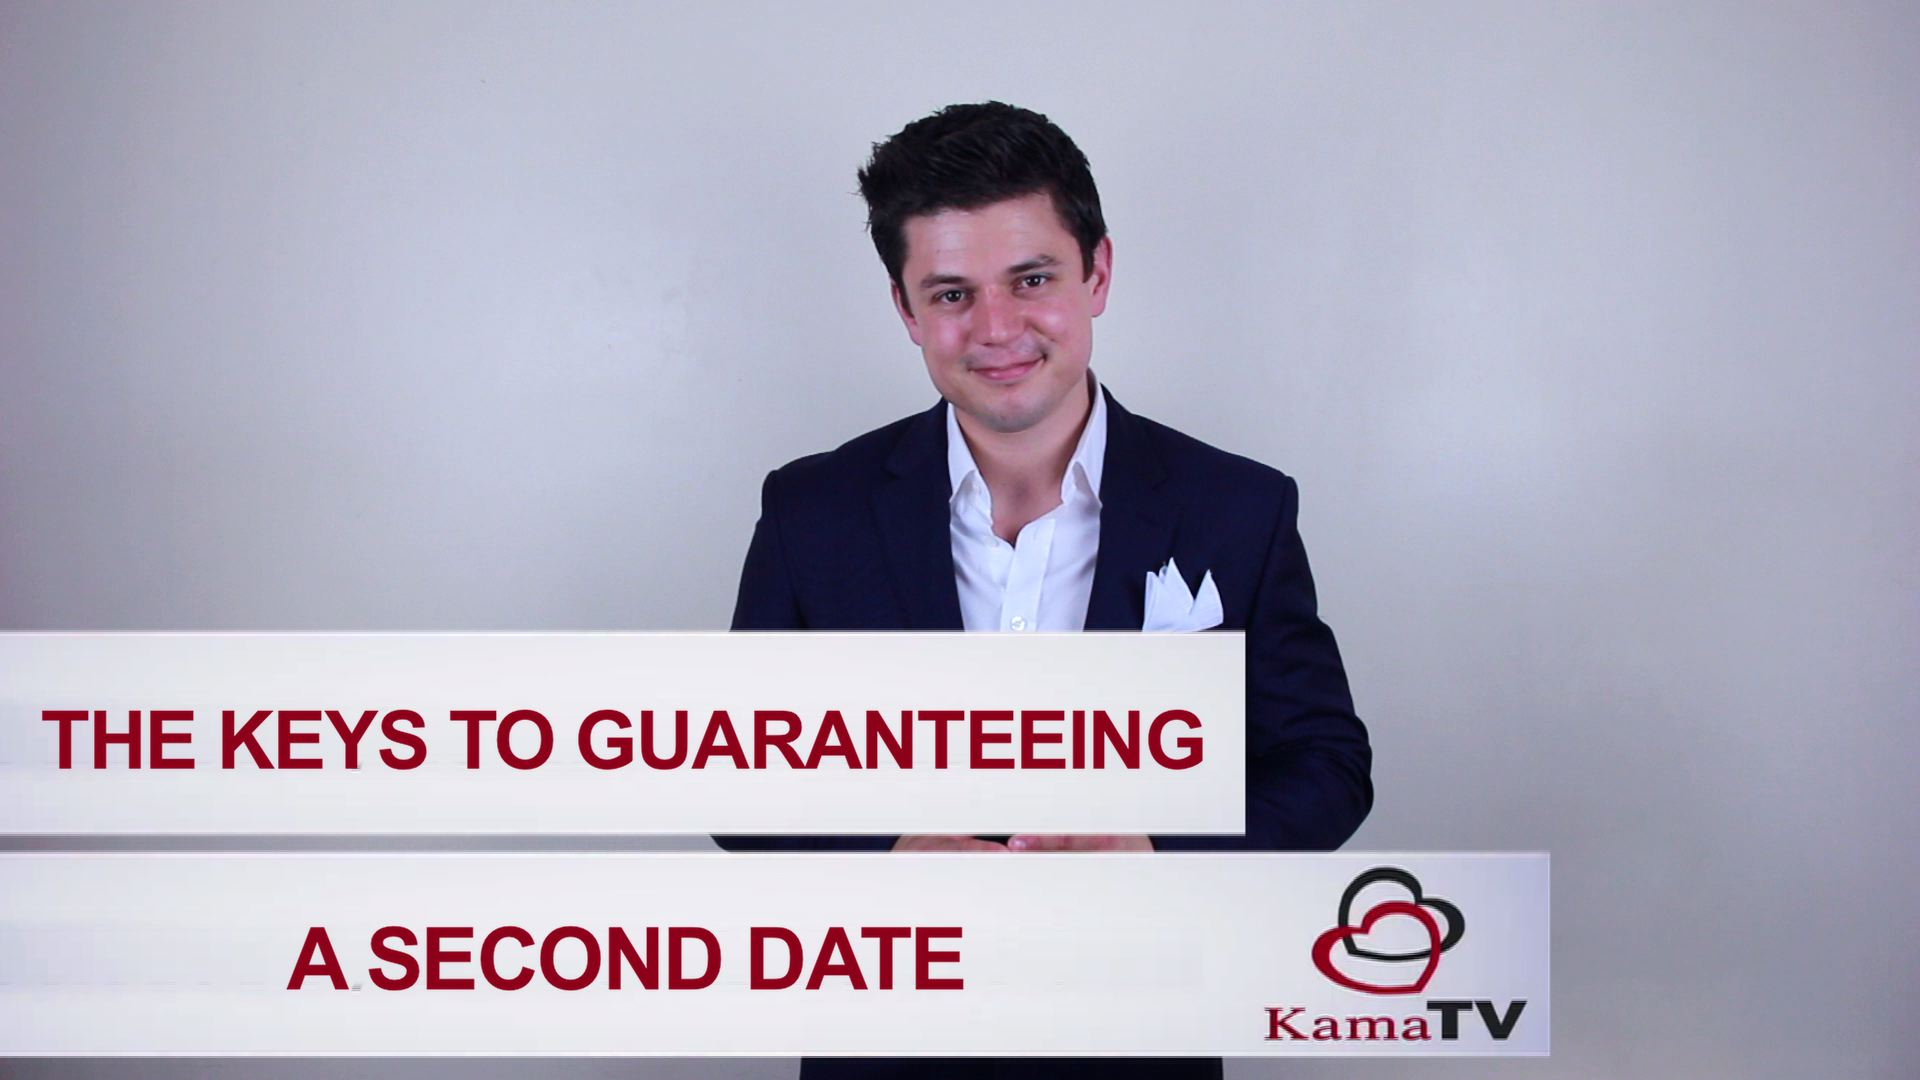 Second date ideas tips having amazing second date